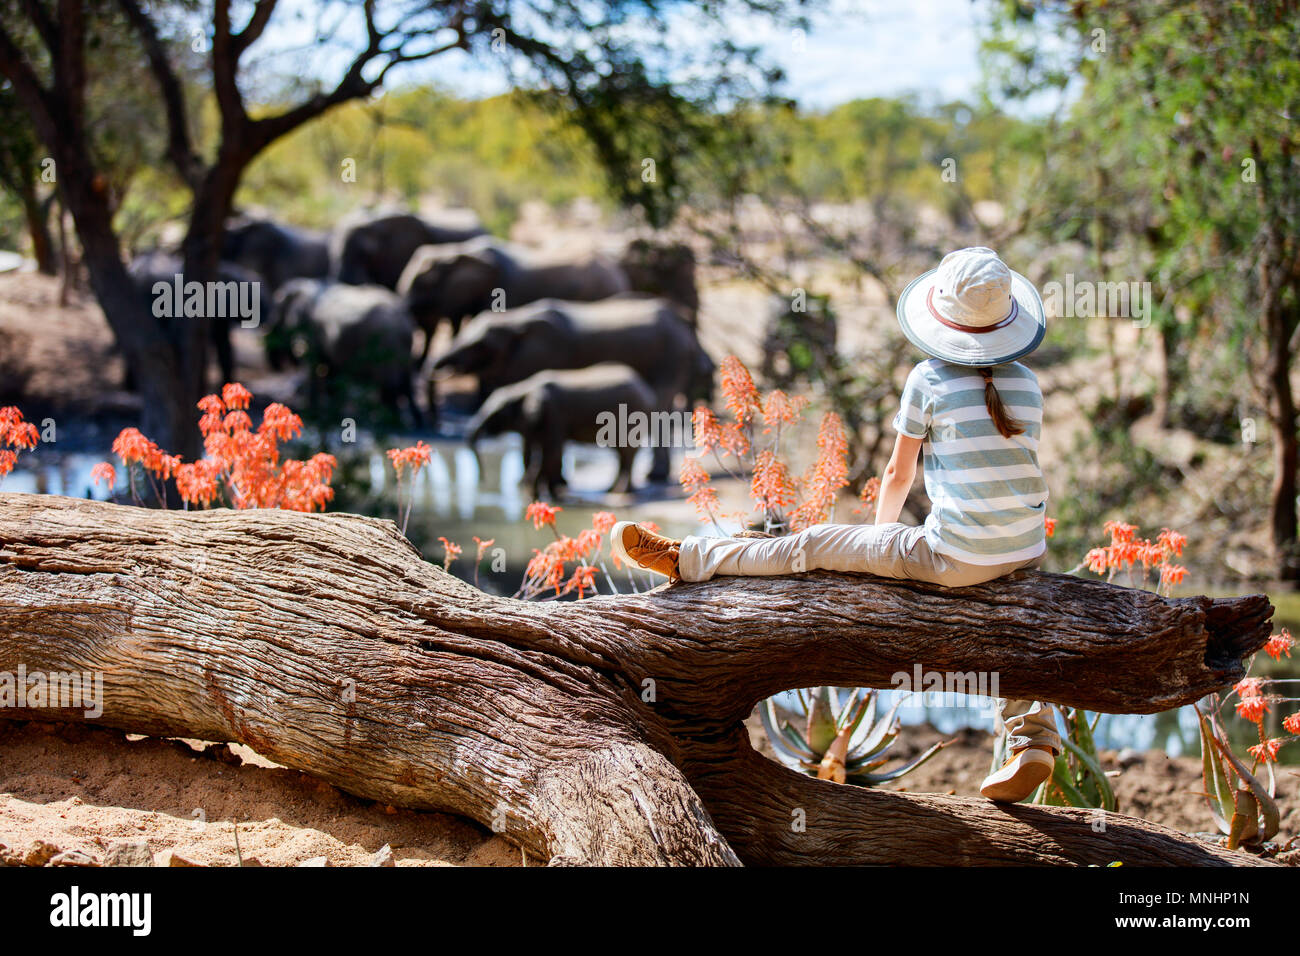 Little girl on African safari vacation enjoying wildlife viewing at watering hole - Stock Image